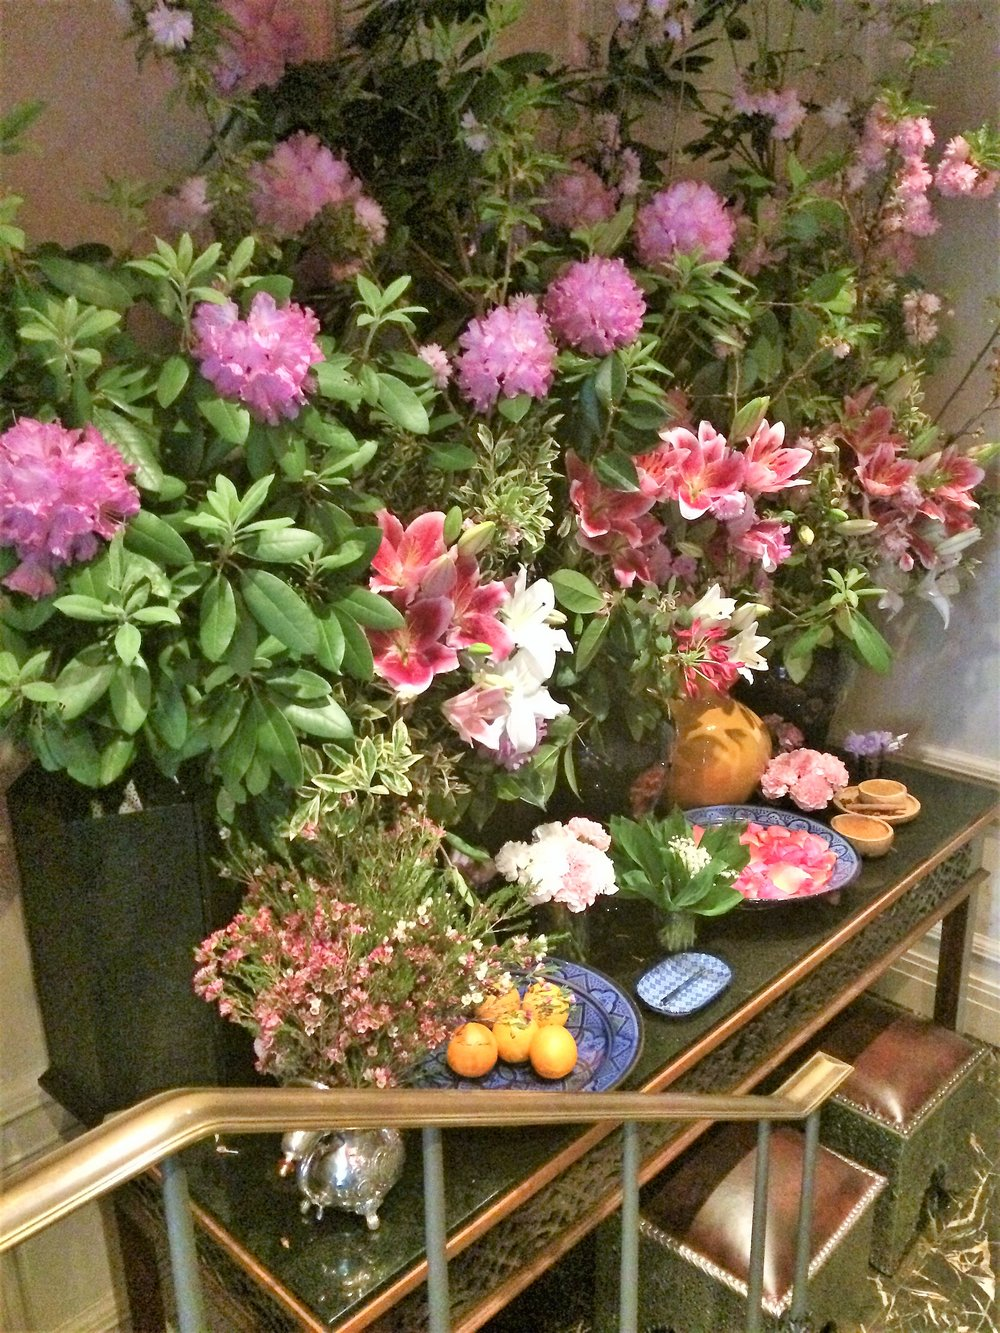 Reception area at Majorellle in the Lowell Hotel at 28 East 63rd Street